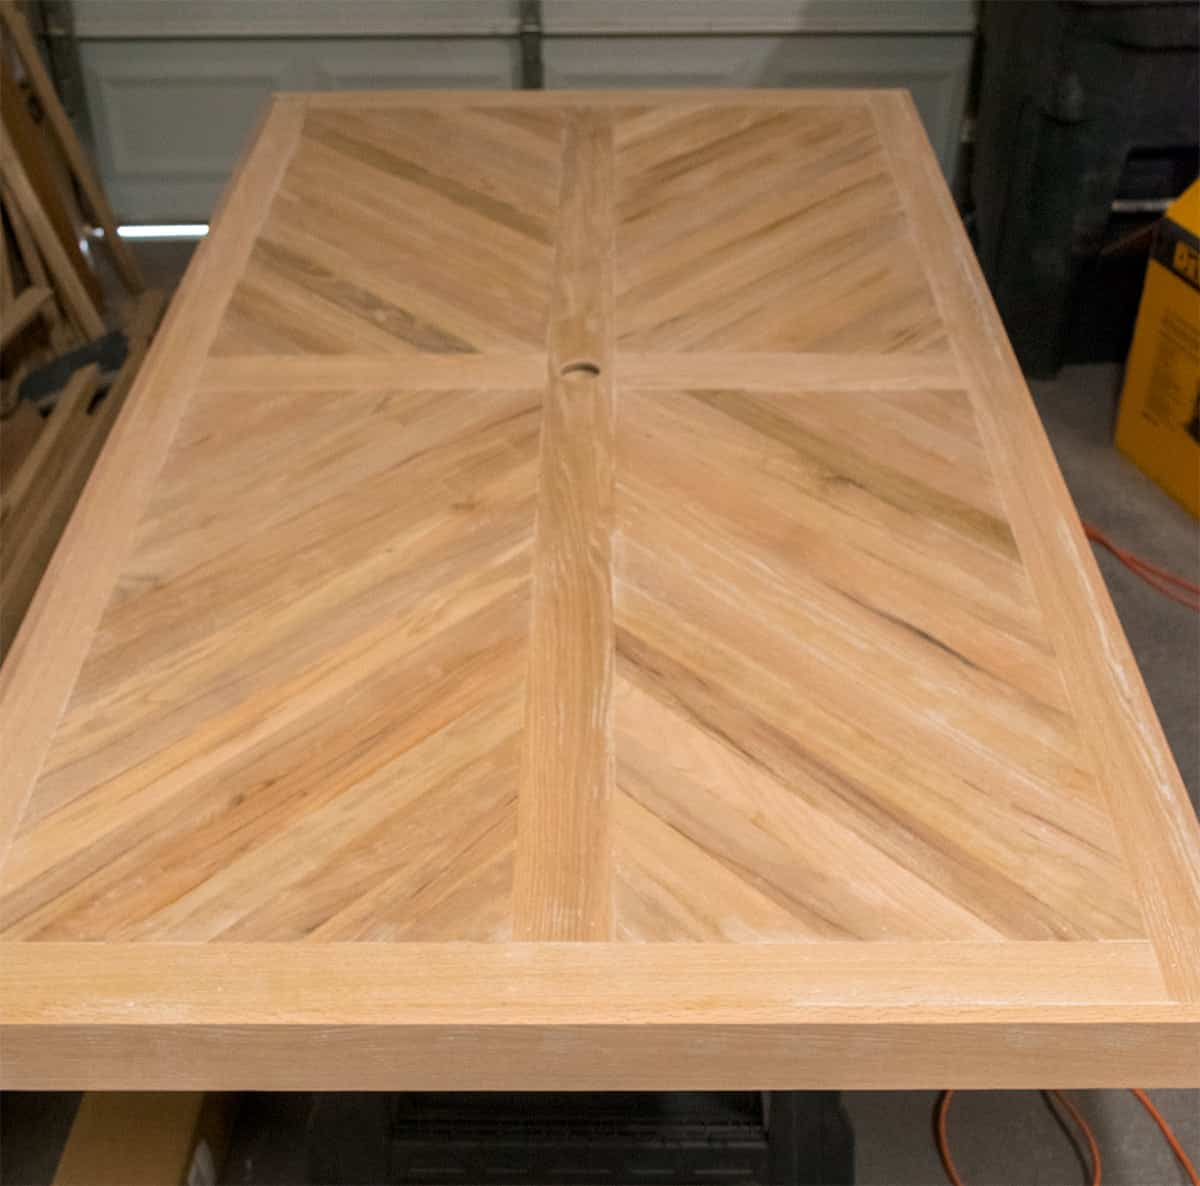 Reclaimed wood cross-X patterned patio table top using white oak hardwood.